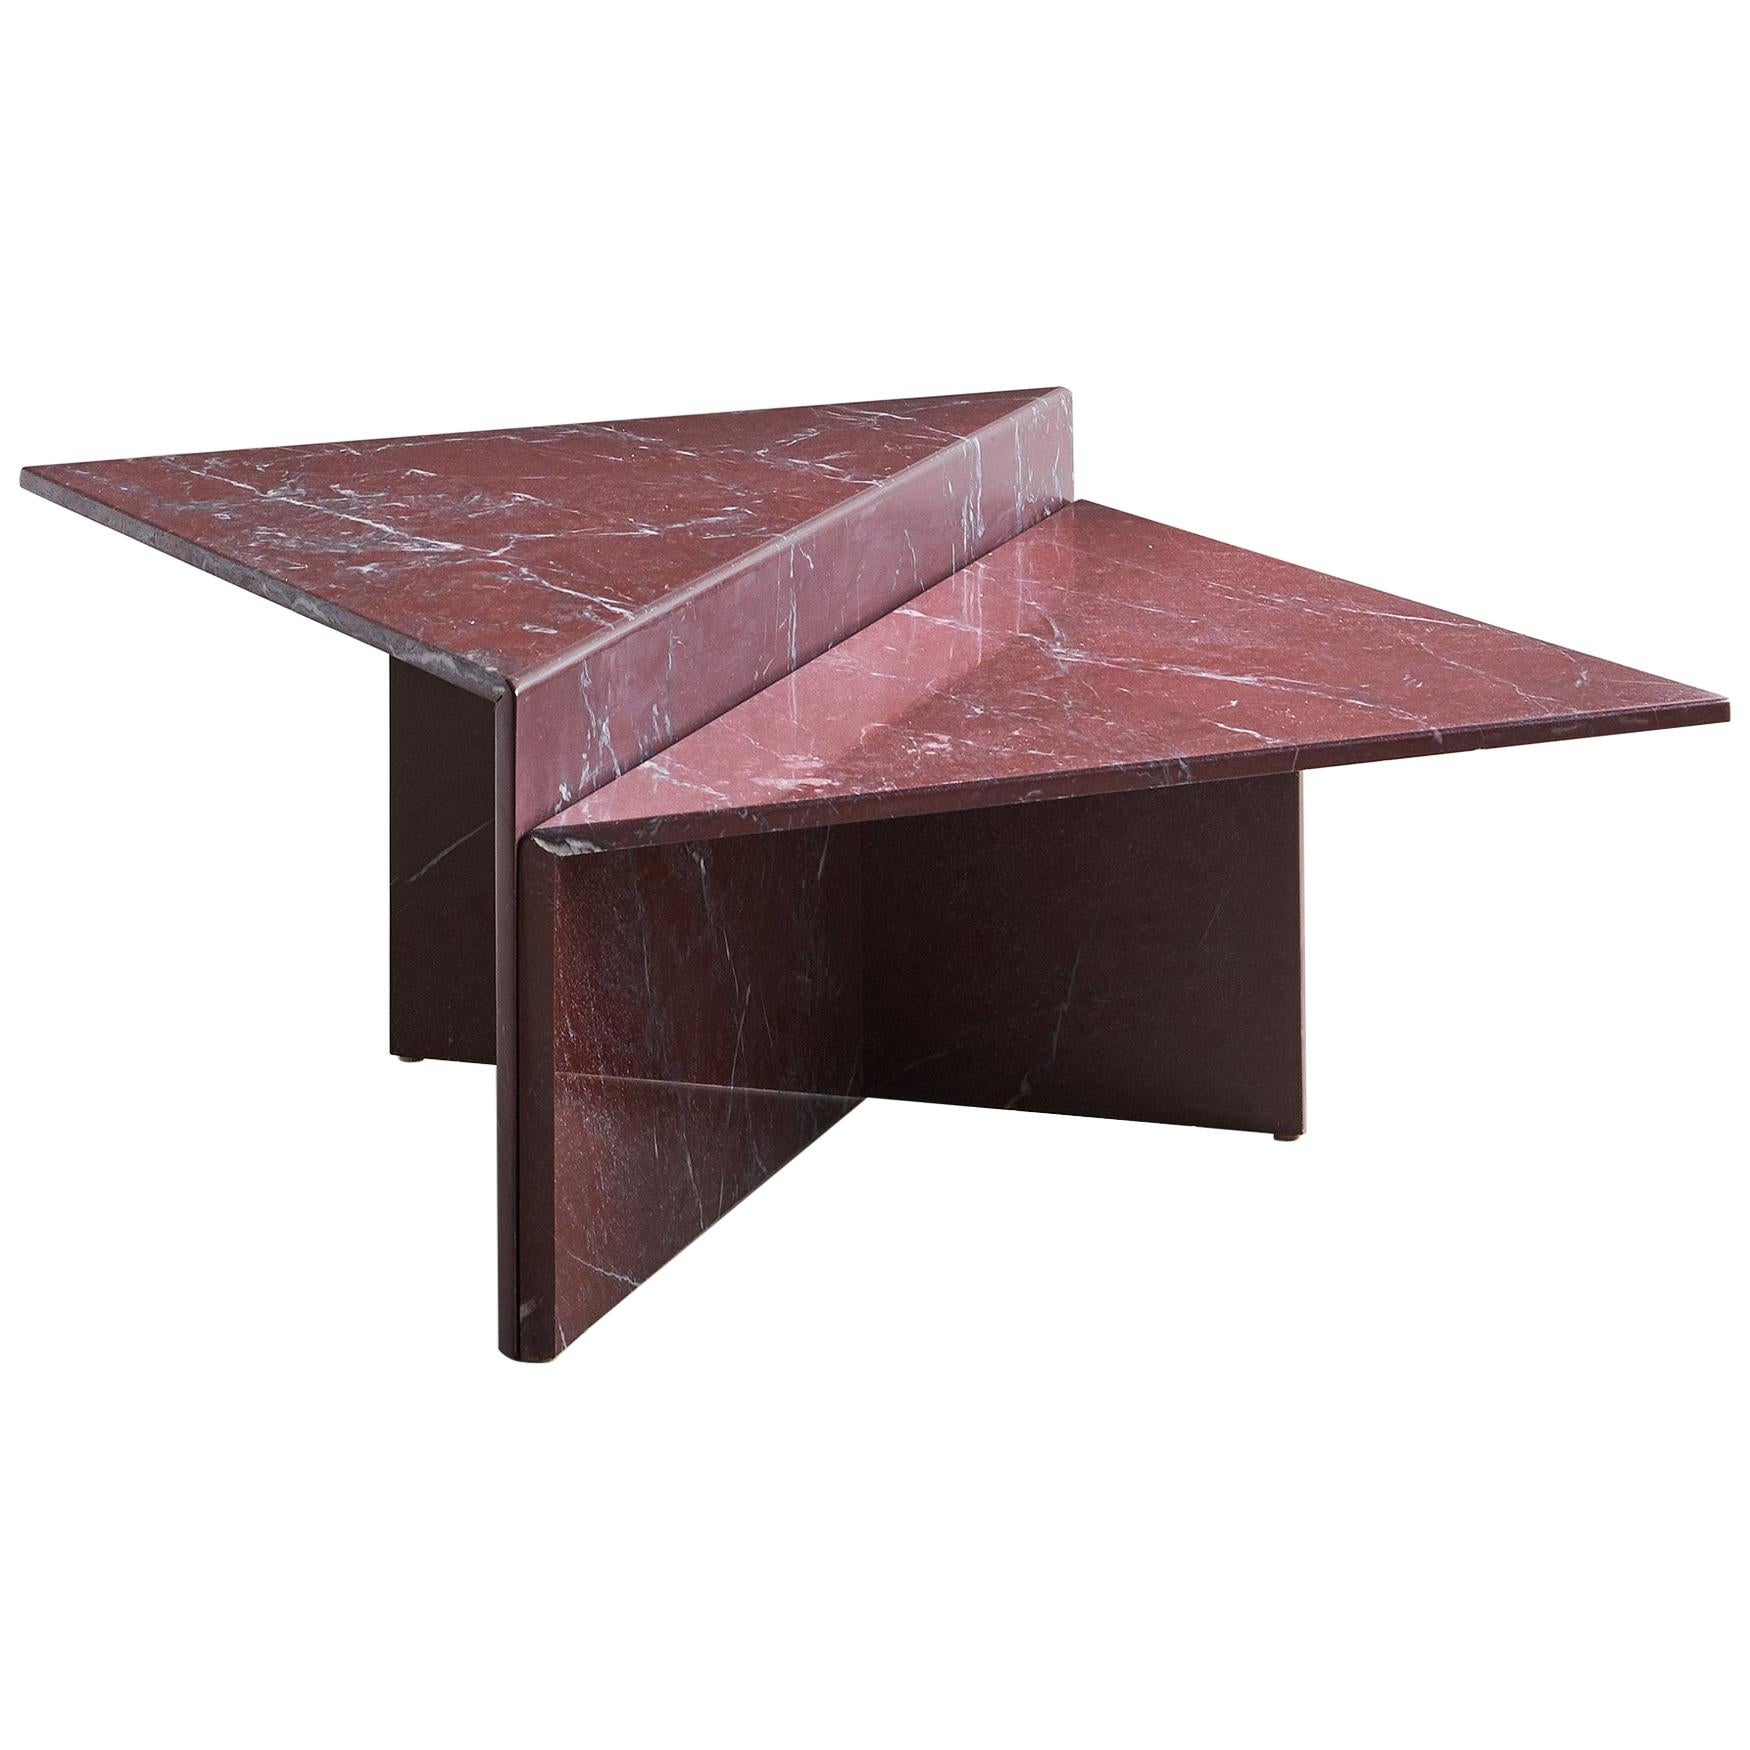 Rosso Francia Two-Tiered Marble Coffee Table